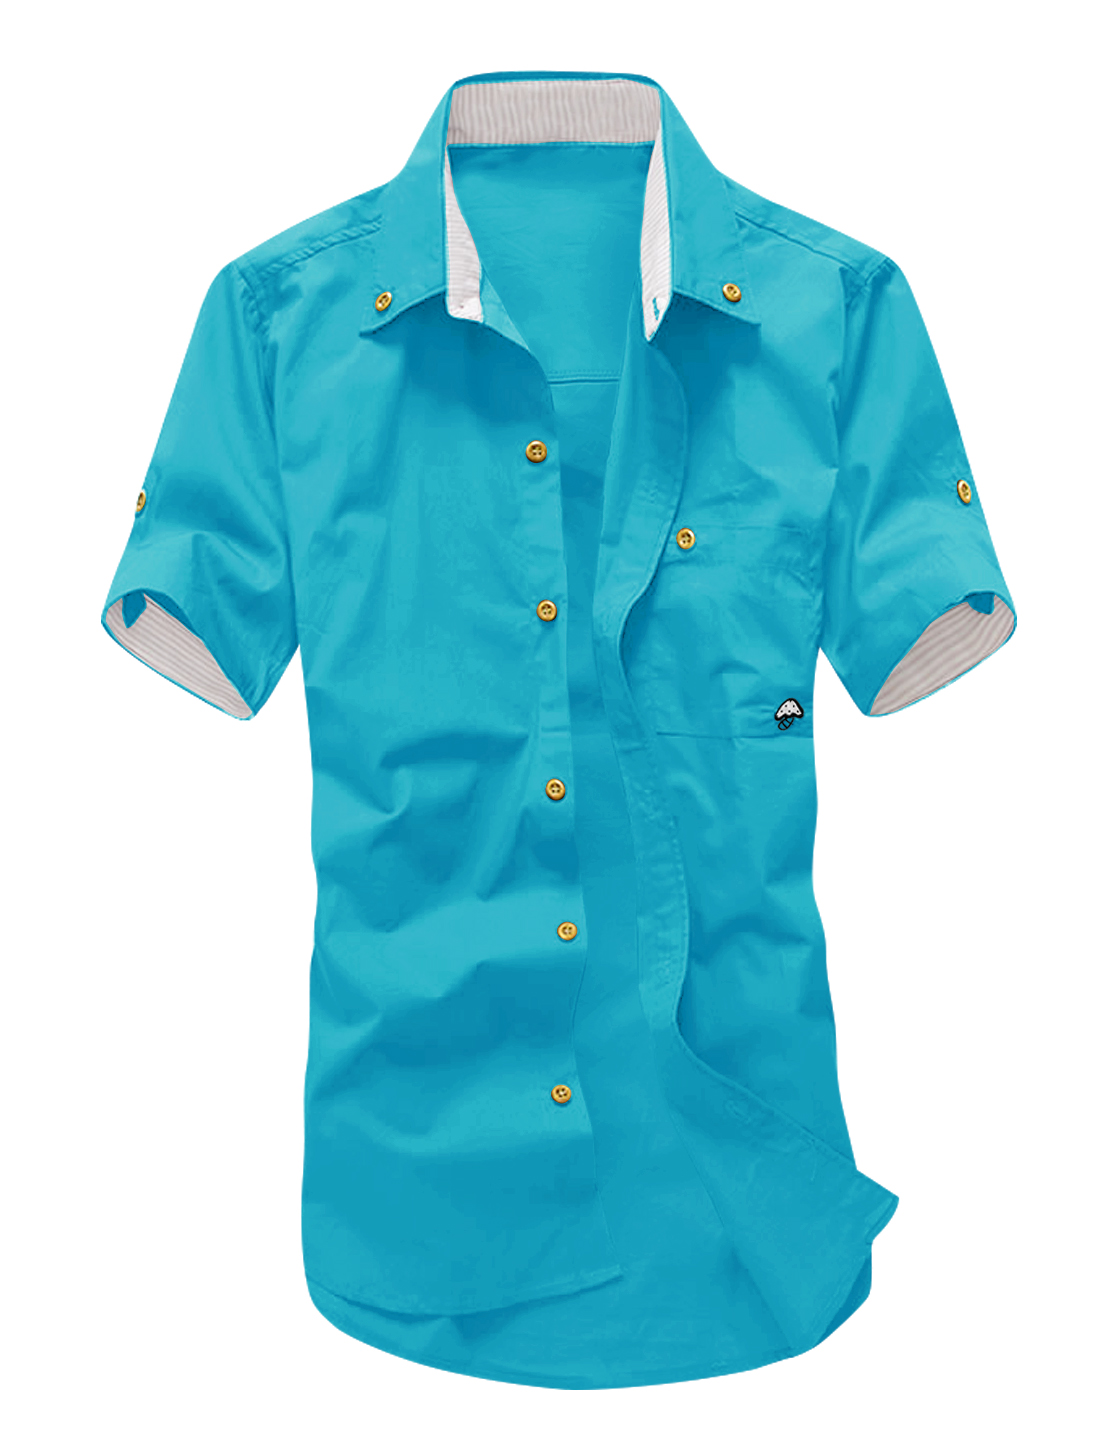 Men Roll Up Sleeve Mushroom Embroidery Shirt Turquoise M